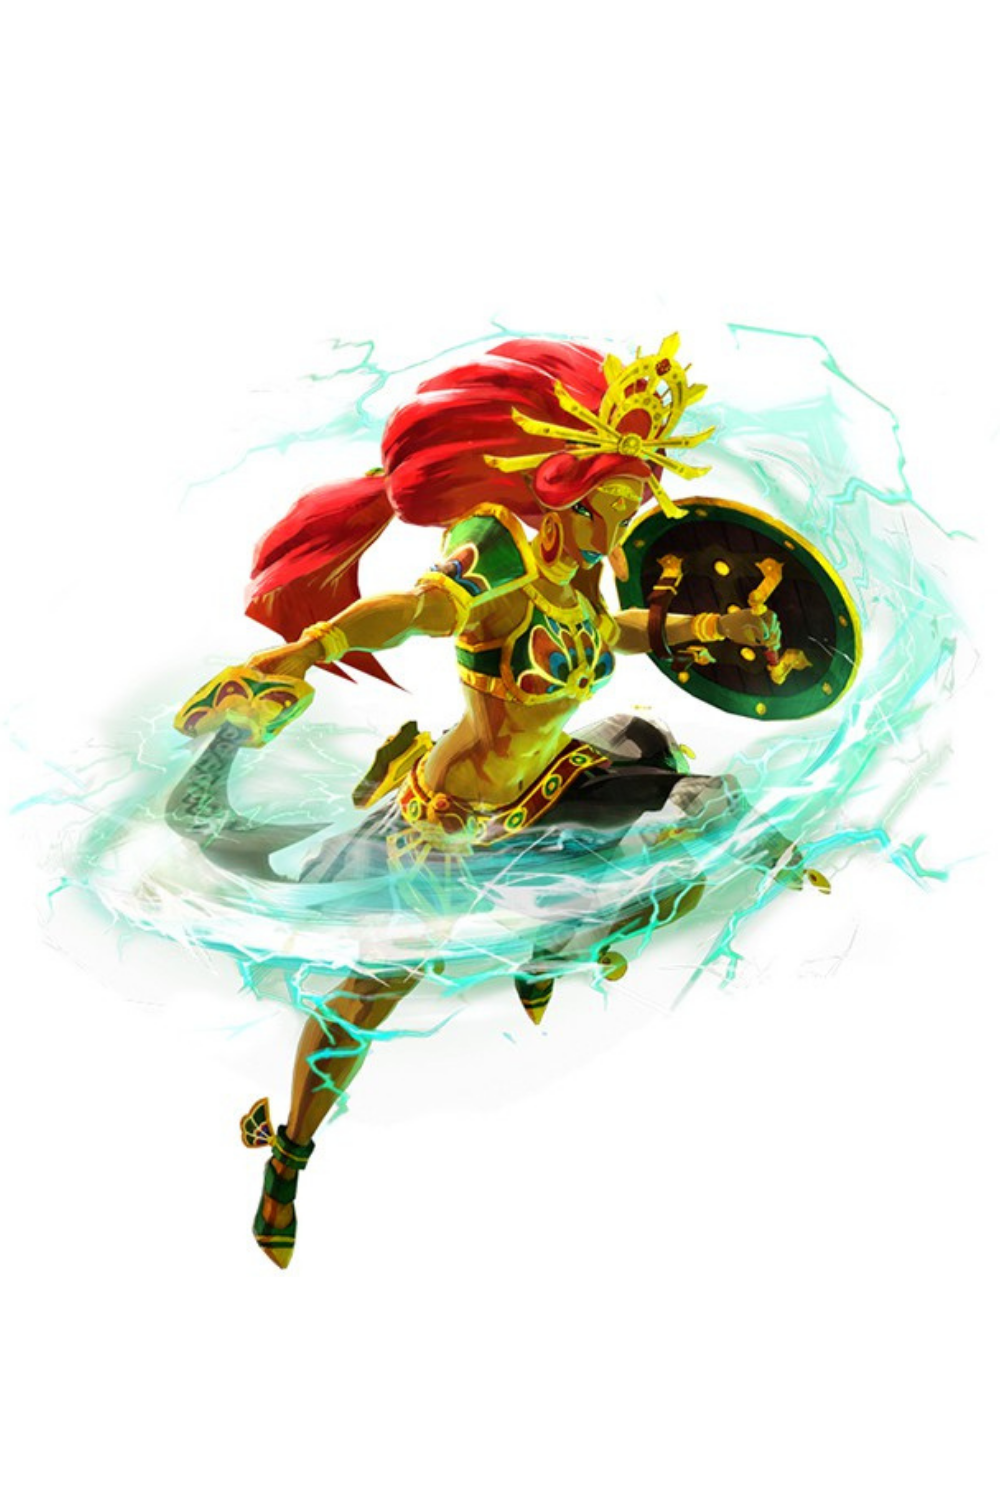 Urbosa Hyrule Warriors Age Of Calamity Hyrule Warriors Tag Art Calamity